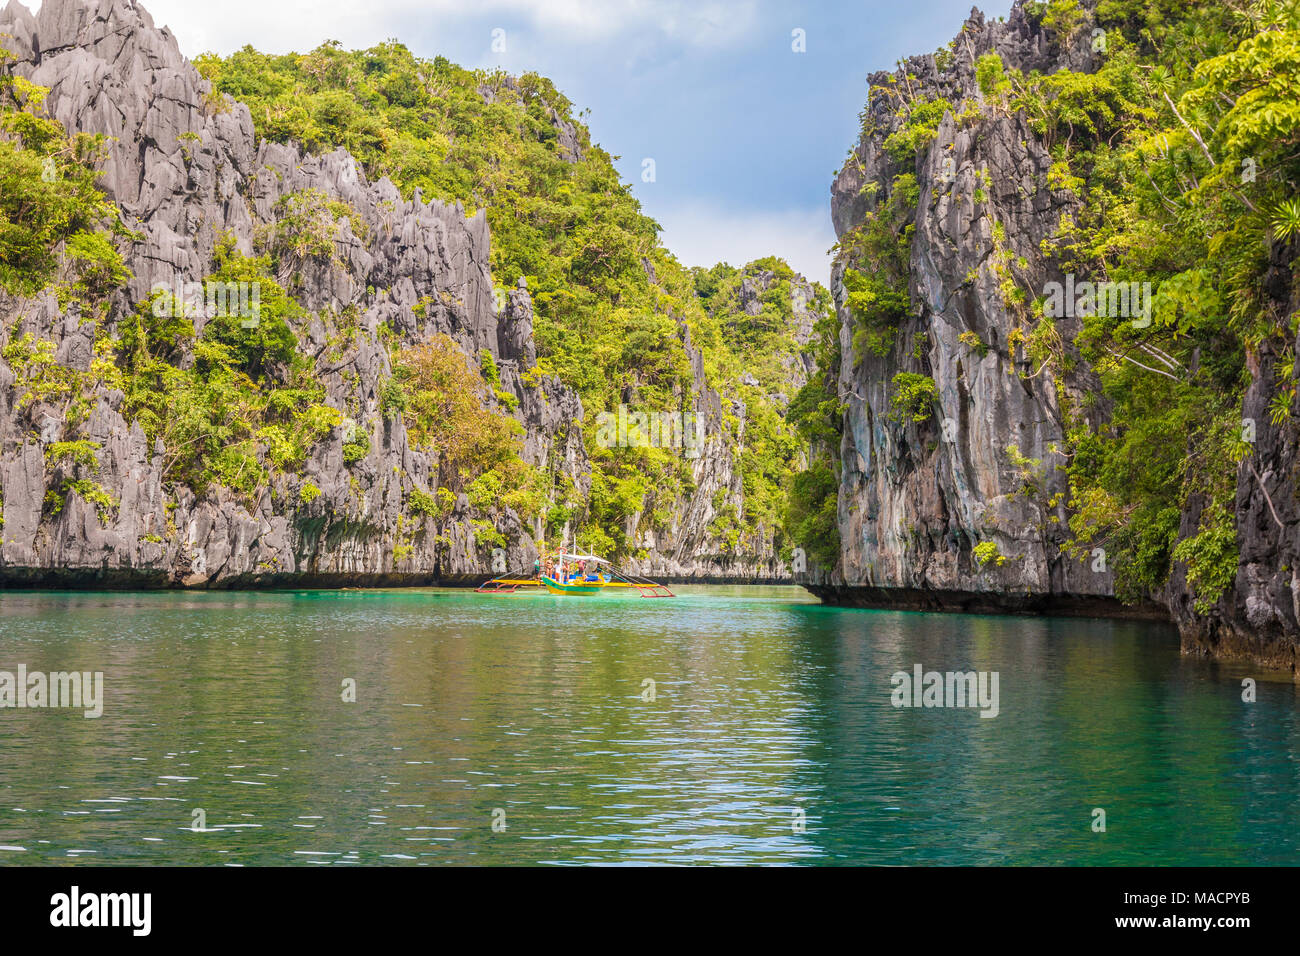 View of the Big Lagoon in El Nido Palawan - Stock Image